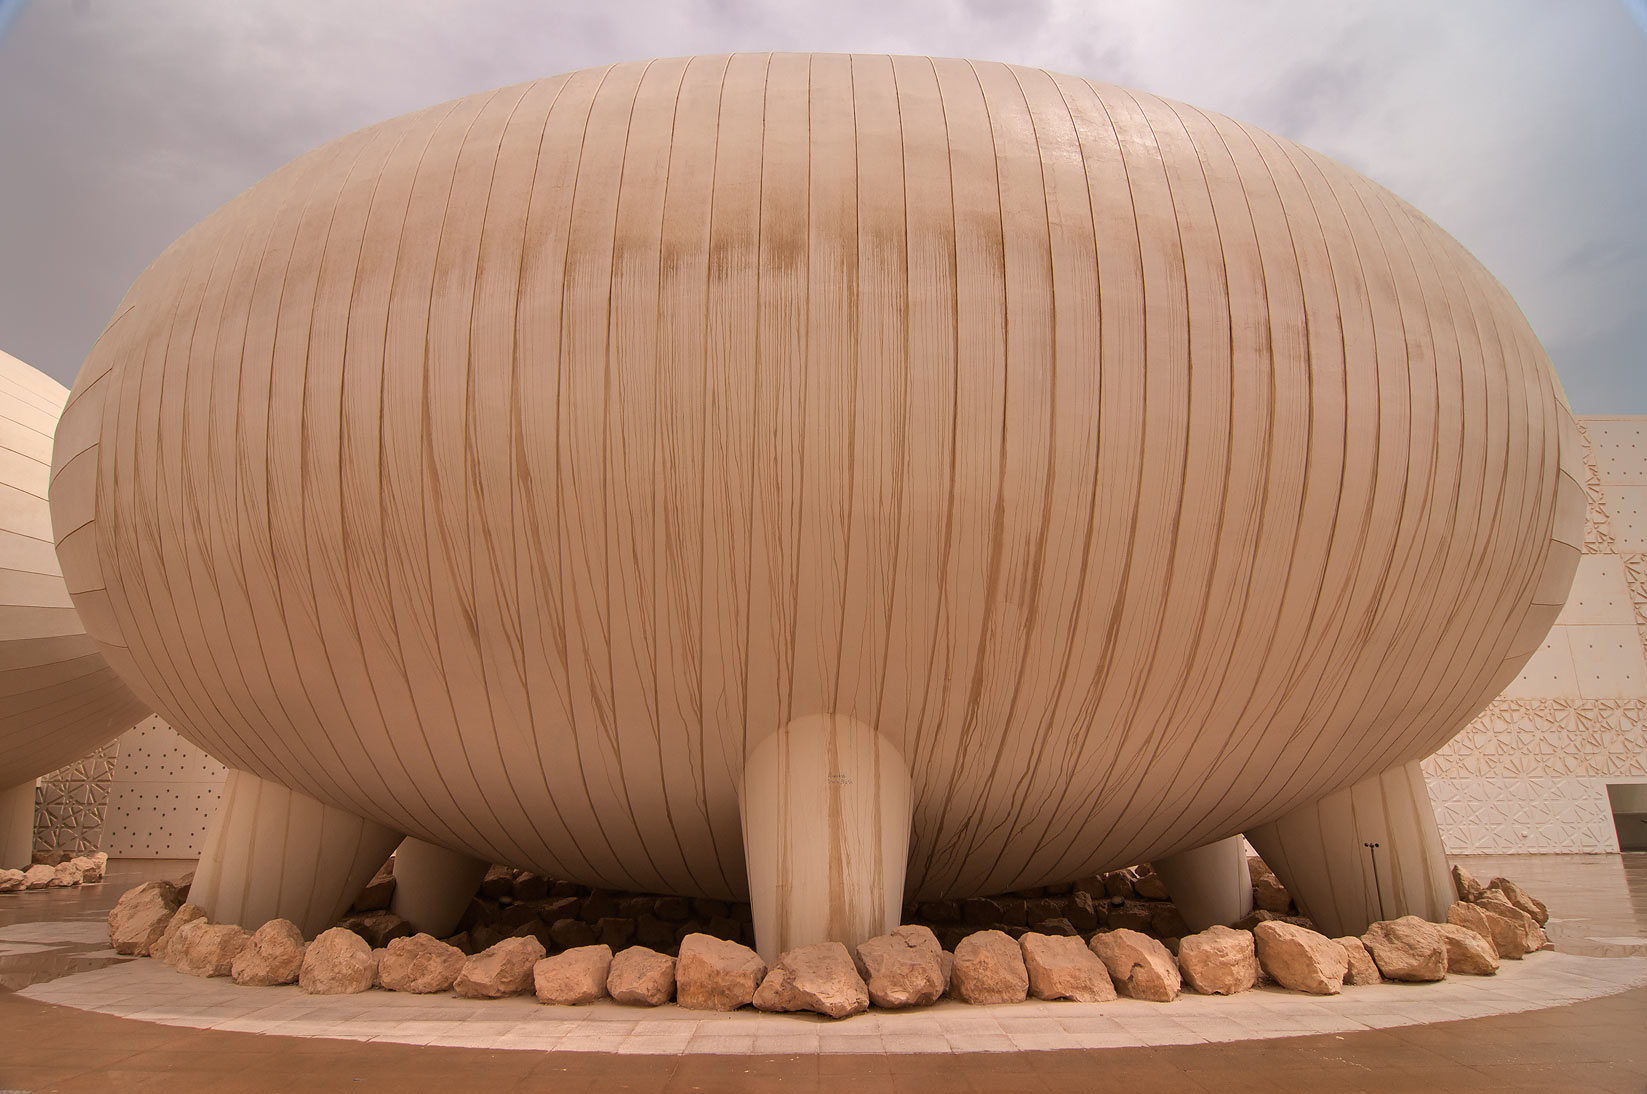 Giant insect egg like ovoid lecture hall of Weill...in Education City at rain. Doha, Qatar